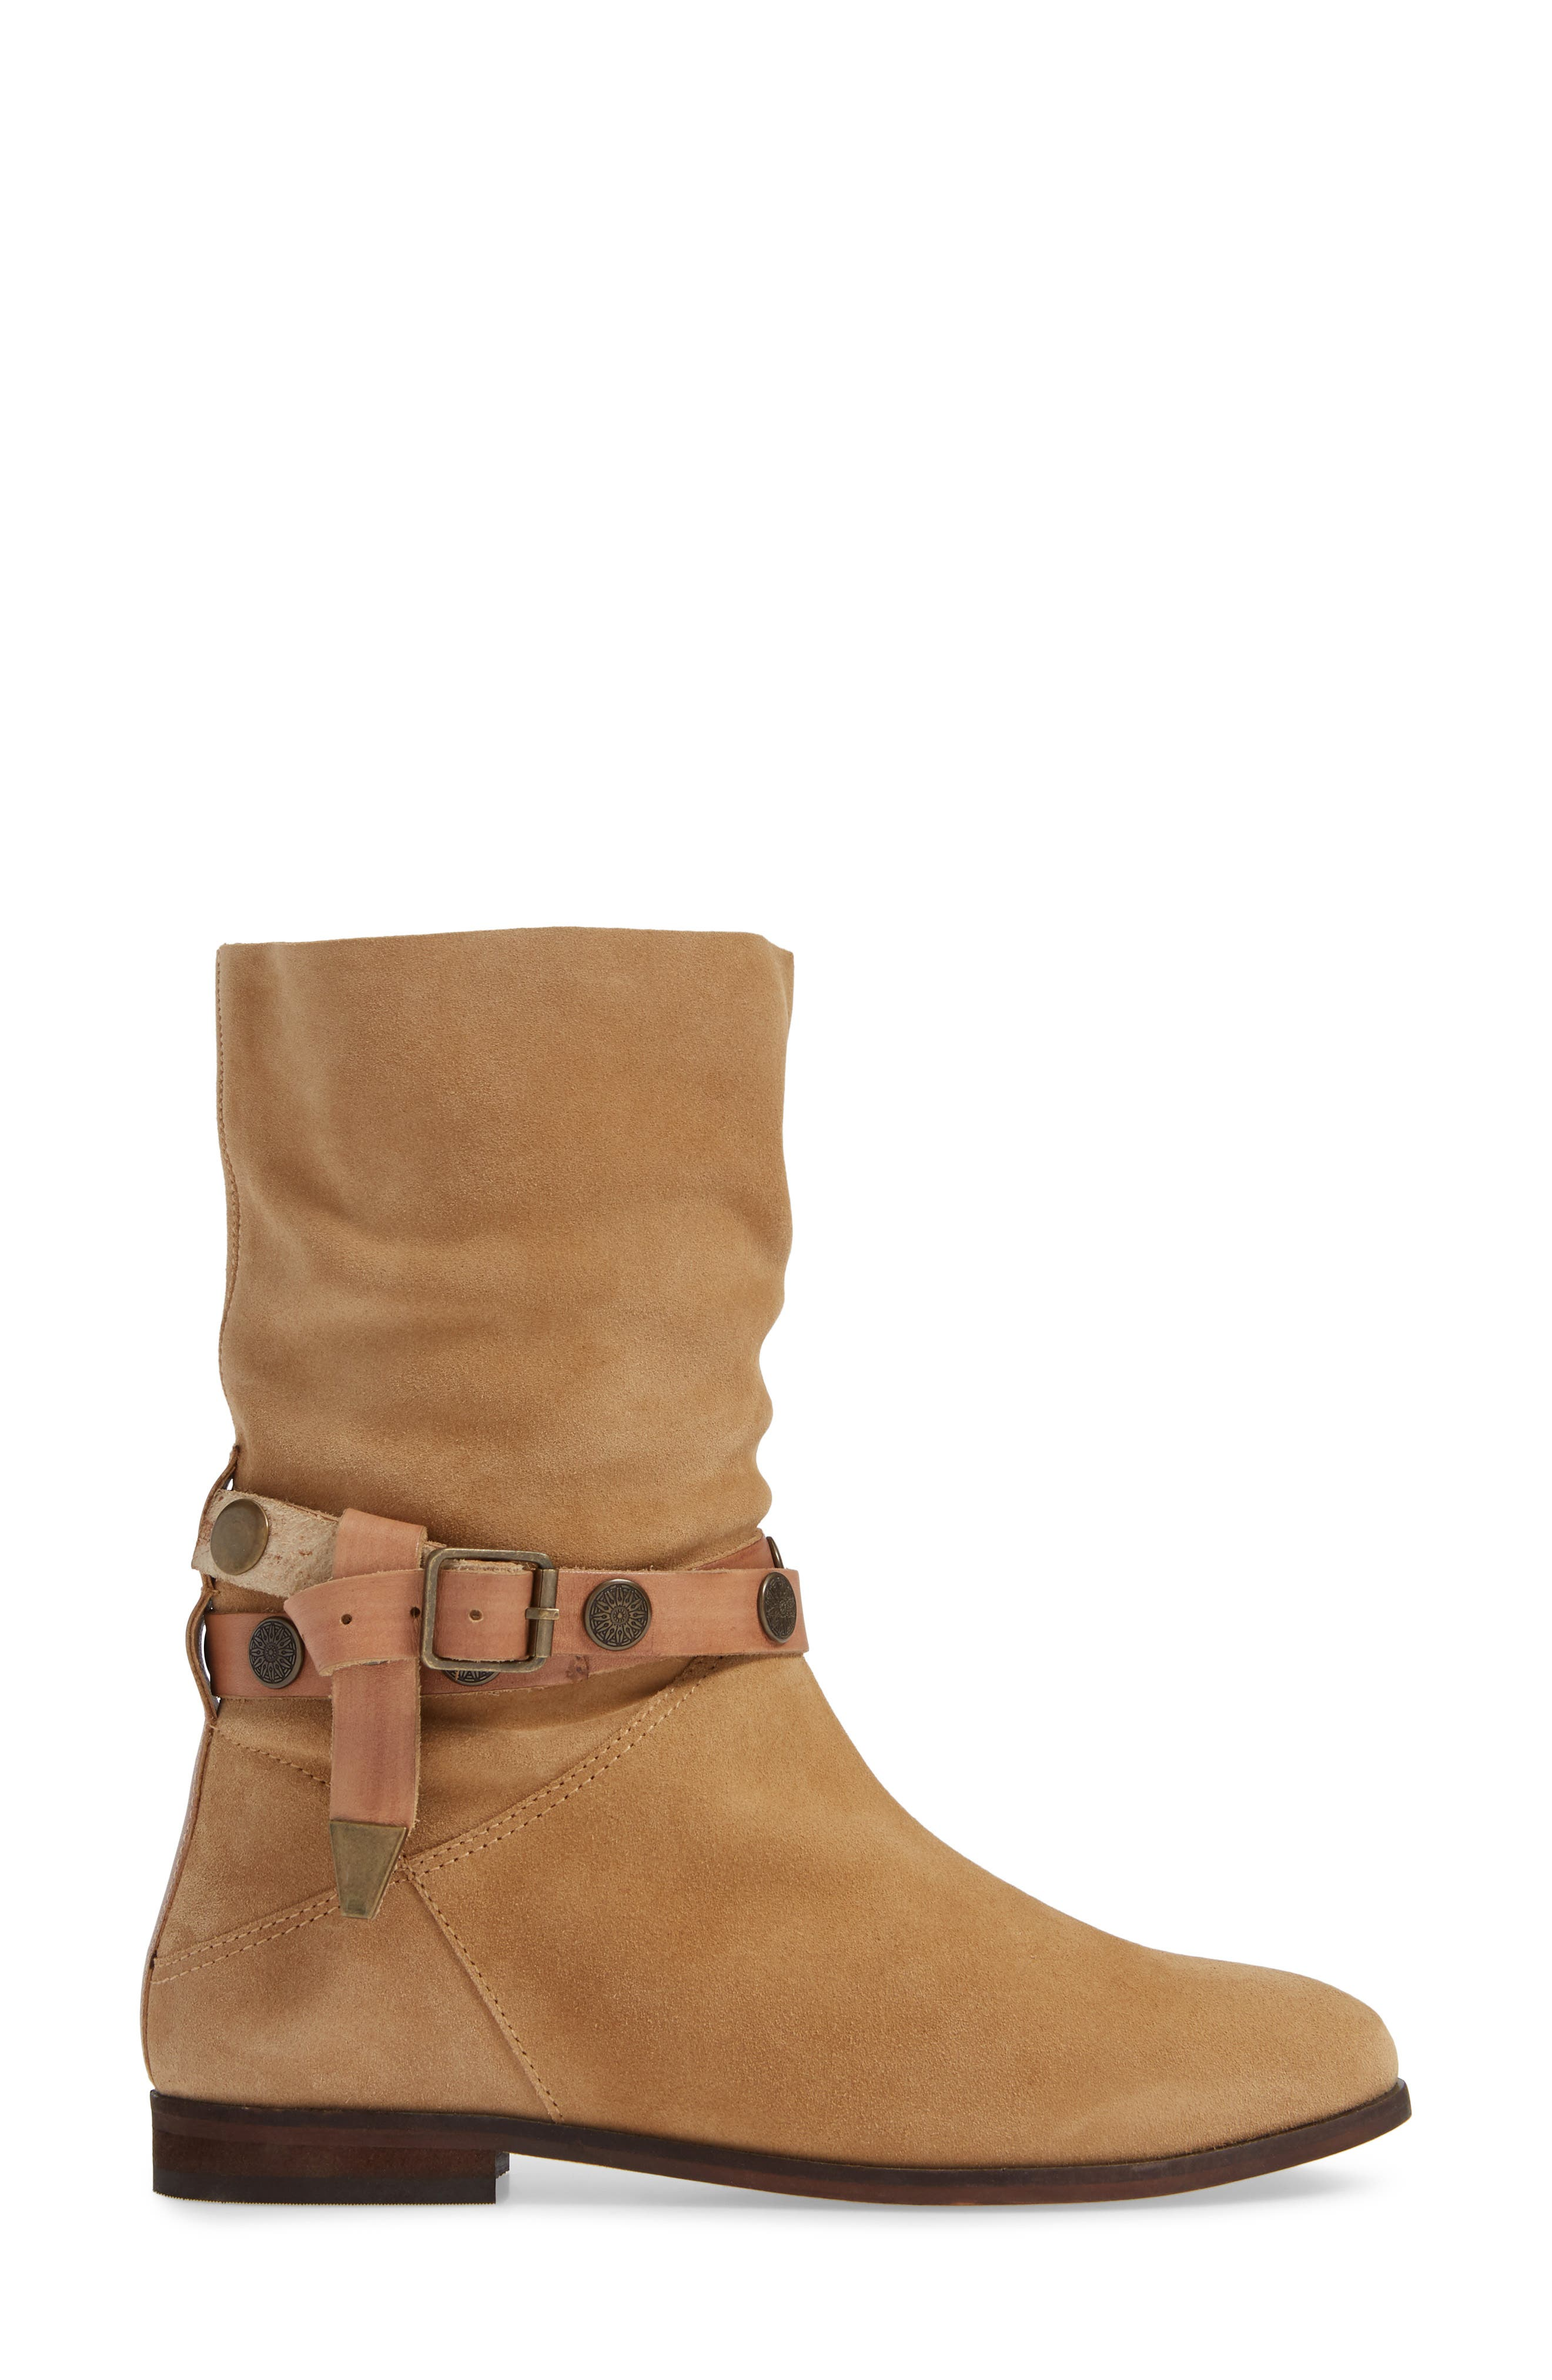 FREE PEOPLE, Hayden Buckle Strap Boot, Alternate thumbnail 3, color, SAND SUEDE